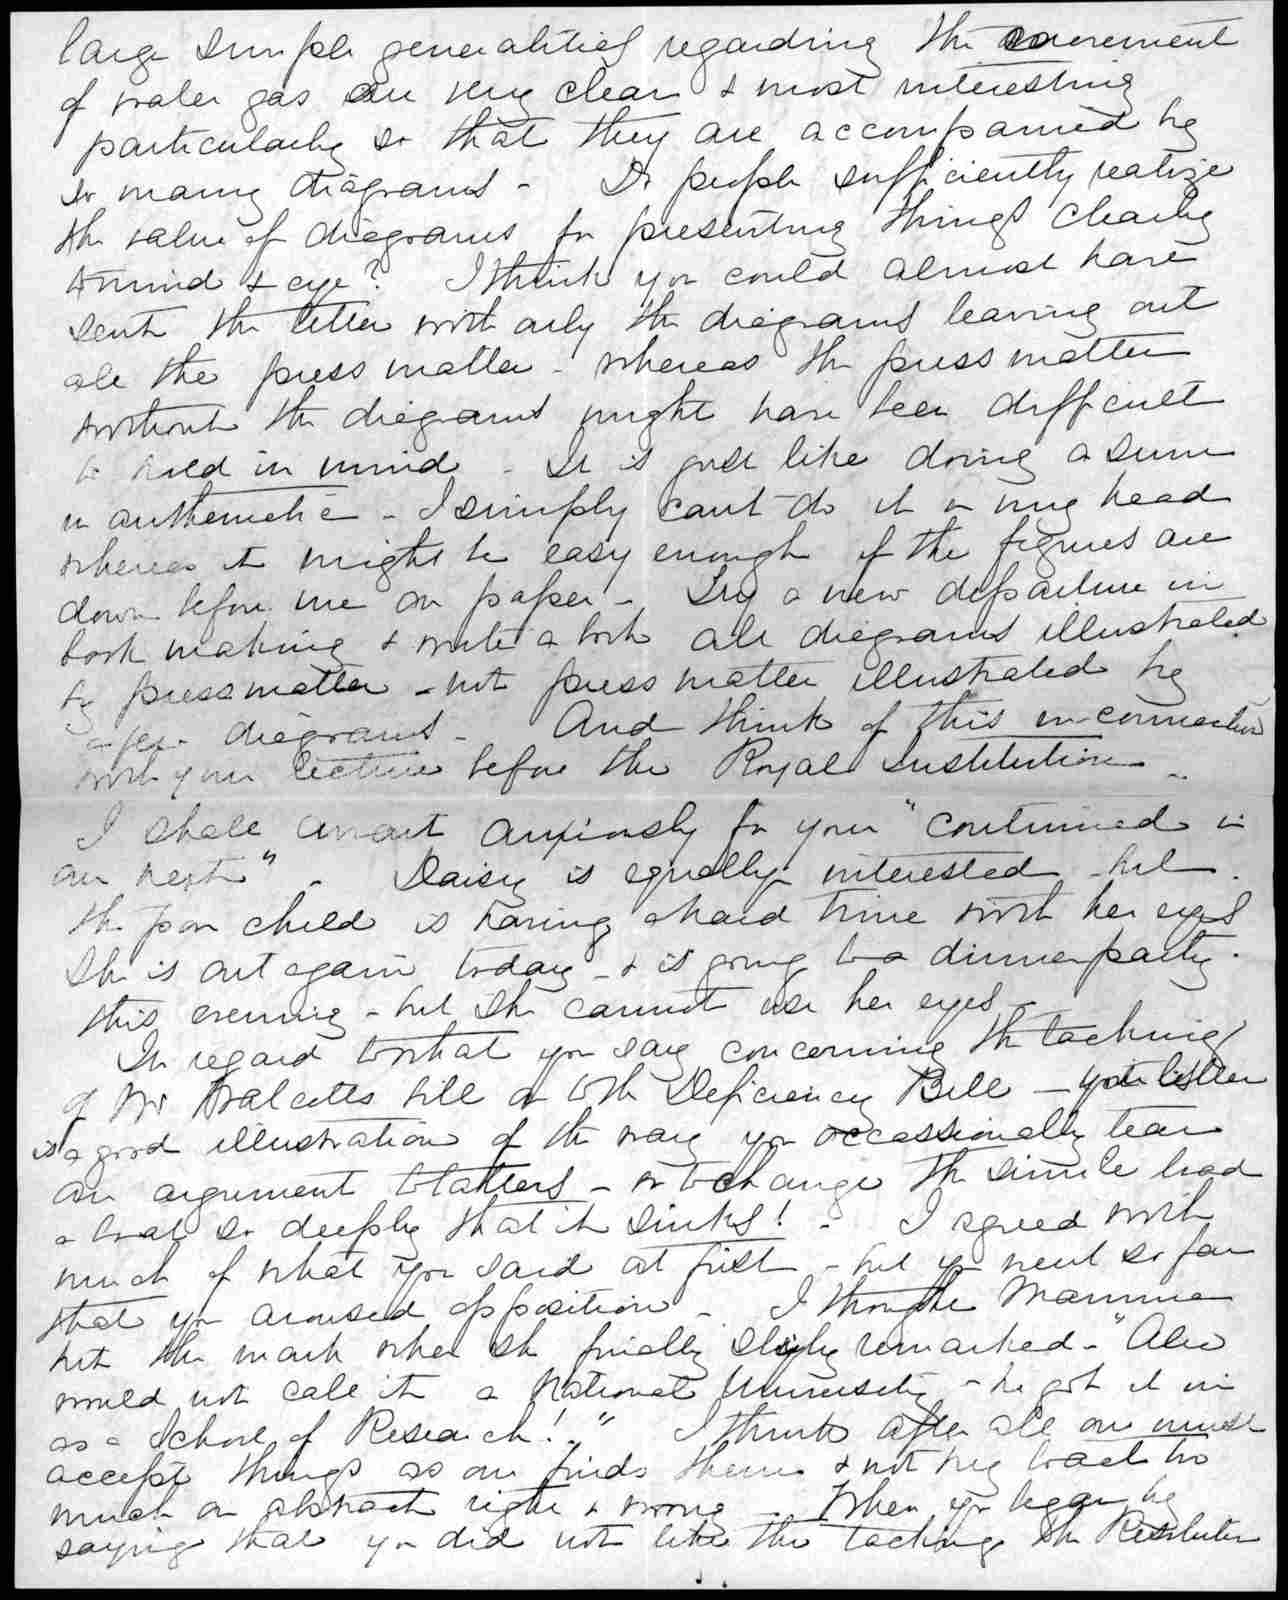 Letter from Mabel Hubbard Bell to Alexander Graham Bell, from March 7, 1901 to March 8, 1901